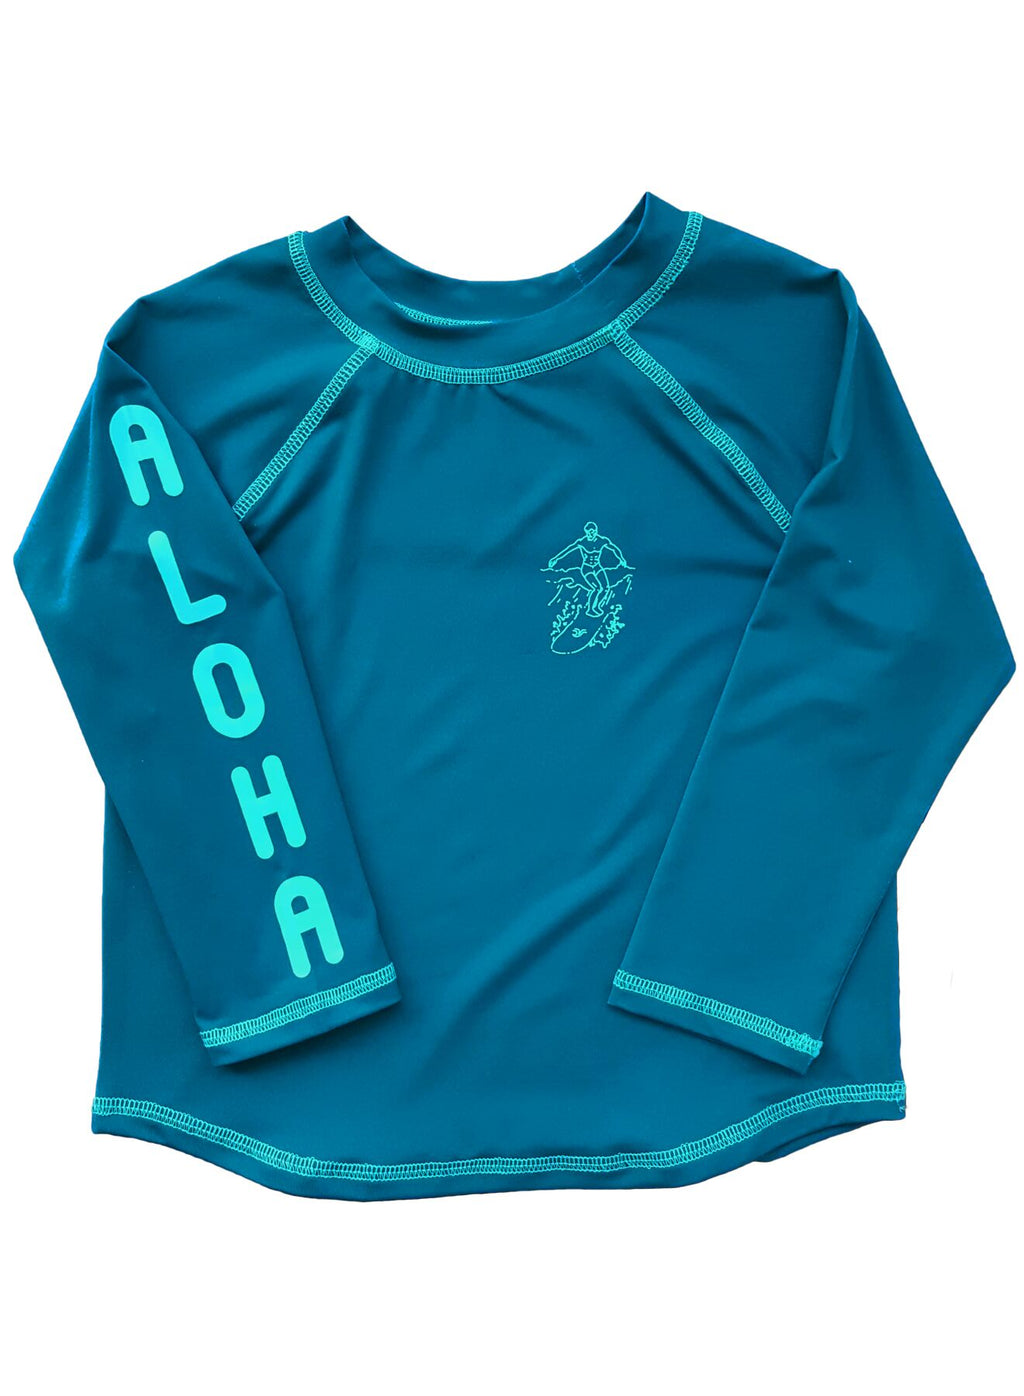 FEATHER 4 ARROW Aloha Rashguard